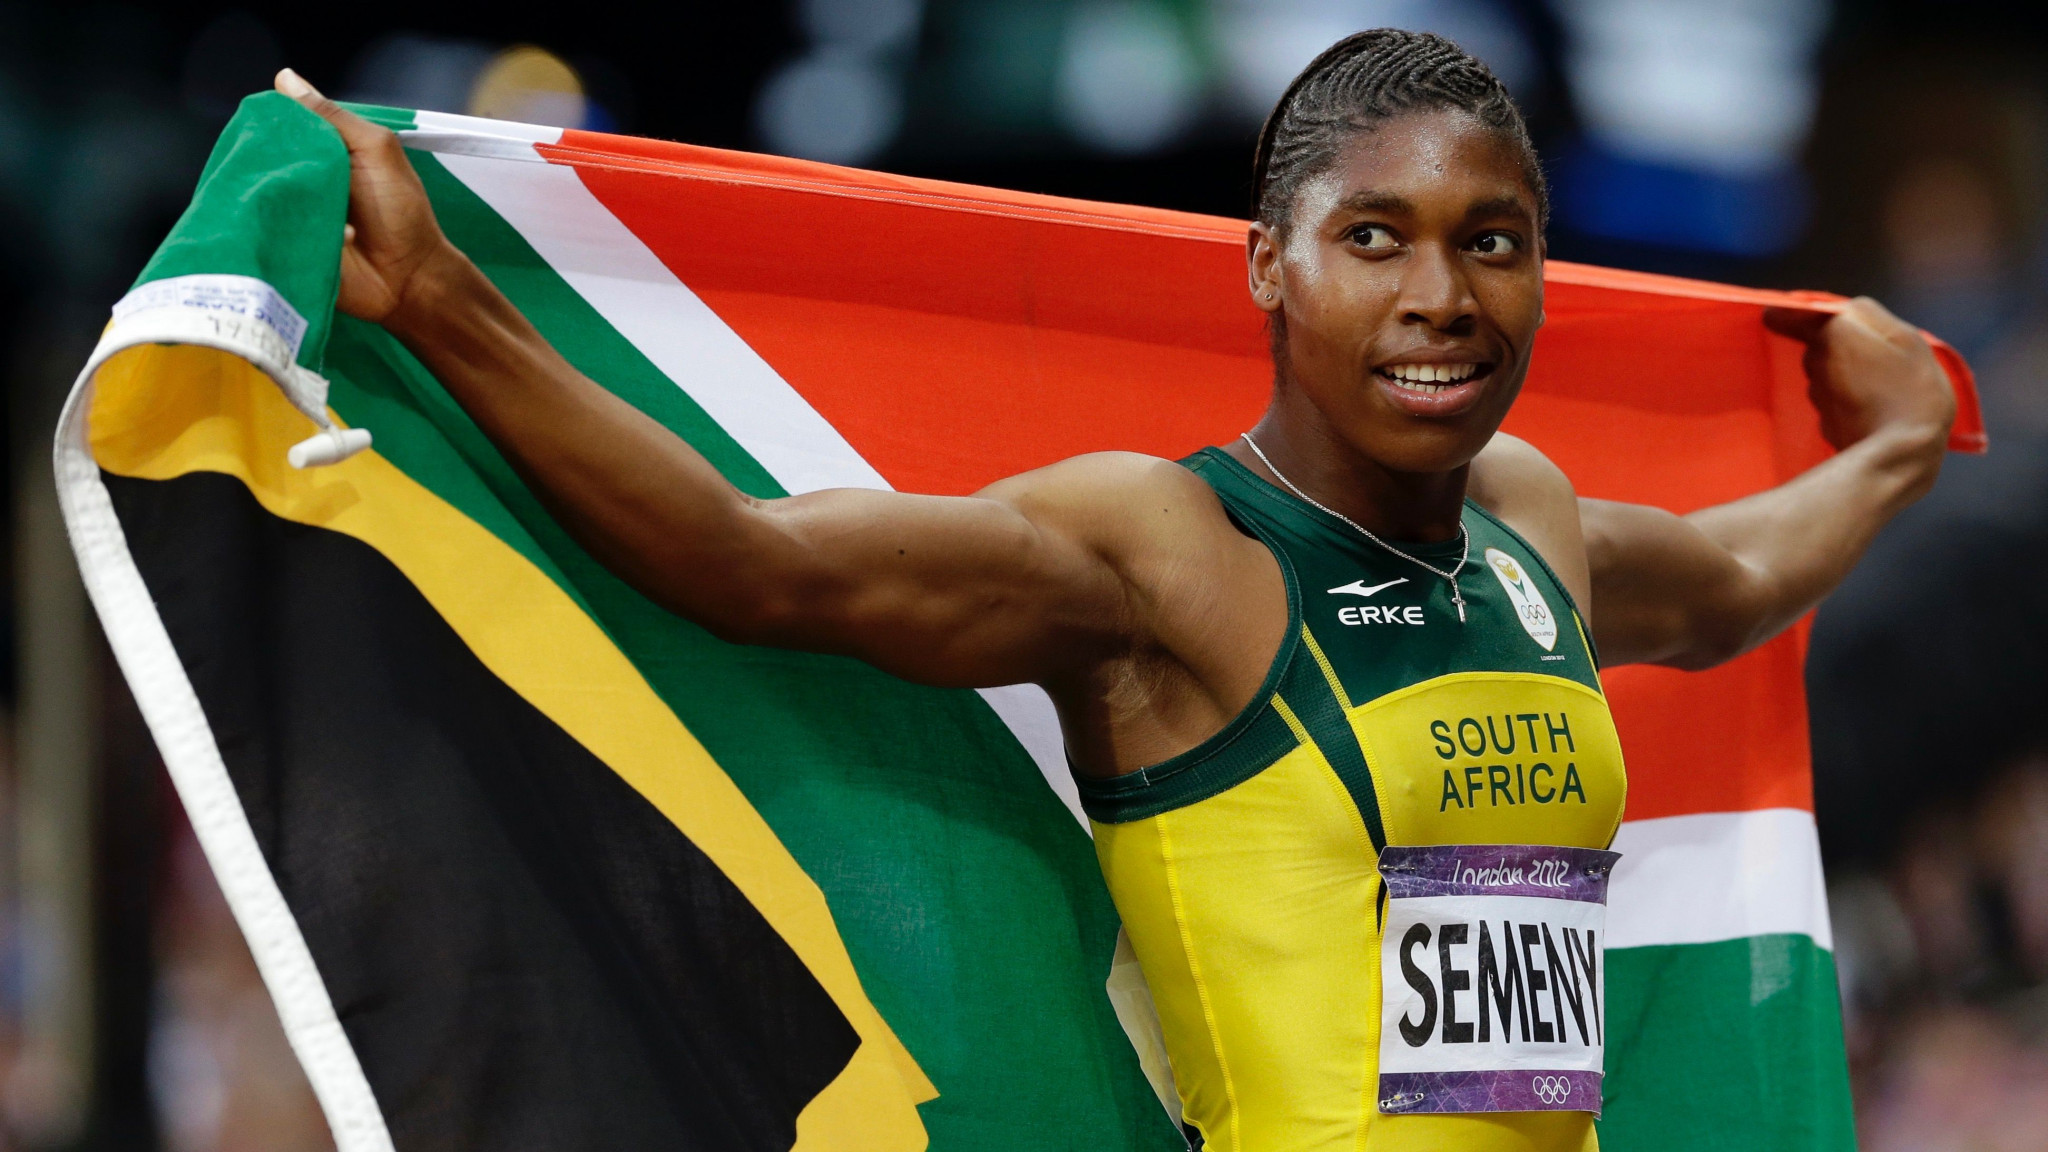 South Africa's Caster Semenya is hoping to win her first Commonwealth Games gold medal at Gold Coast 2018 ©Getty Images